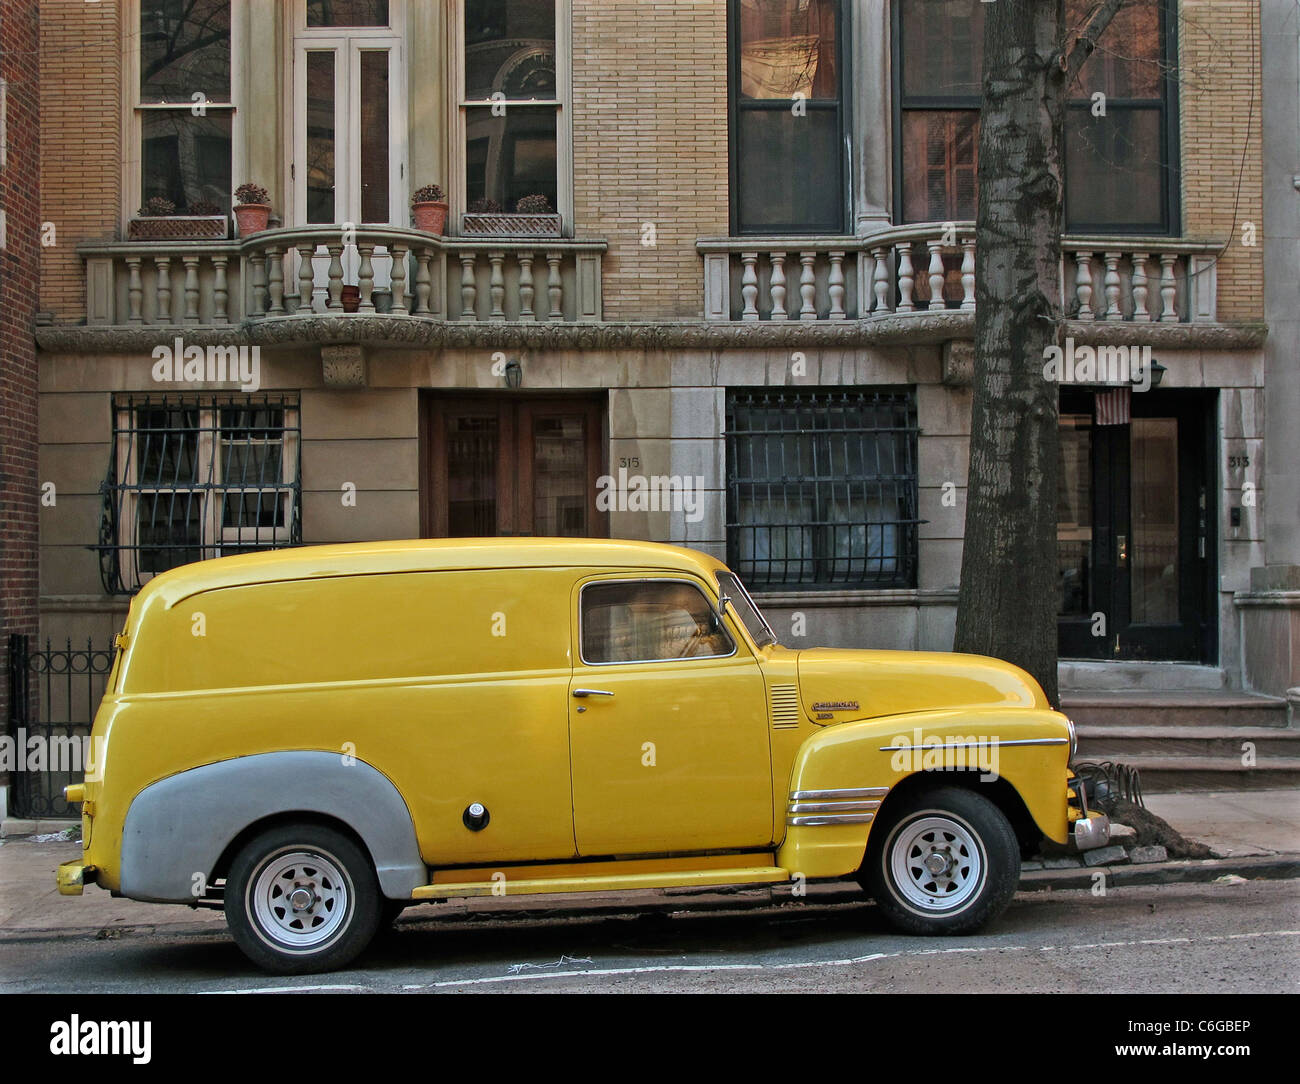 Vieux camion jaune 40s Upper West Side, NEW YORK Photo Stock